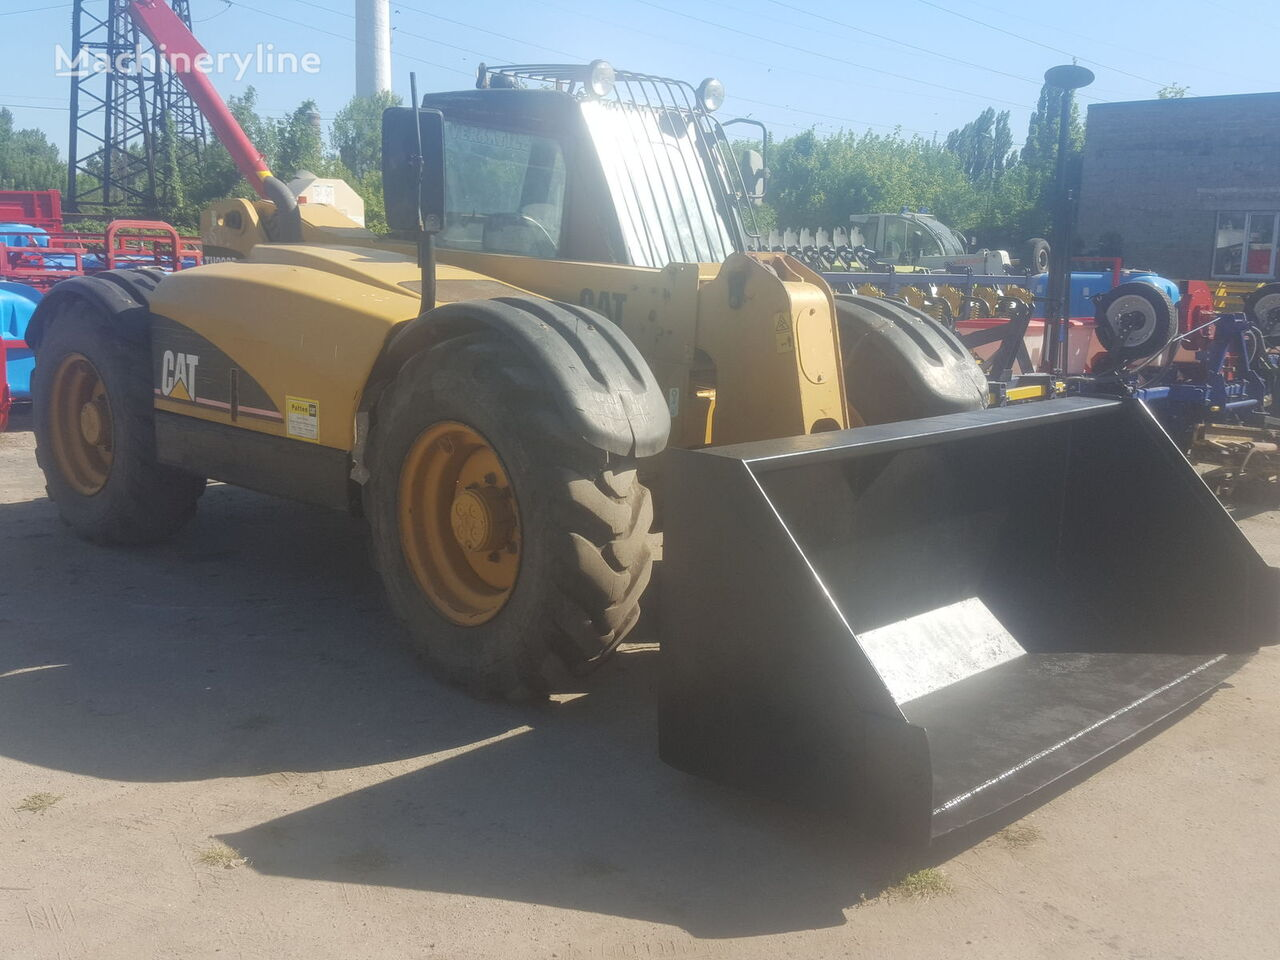 CATERPILLAR TH220B  teleskopski utovarivač